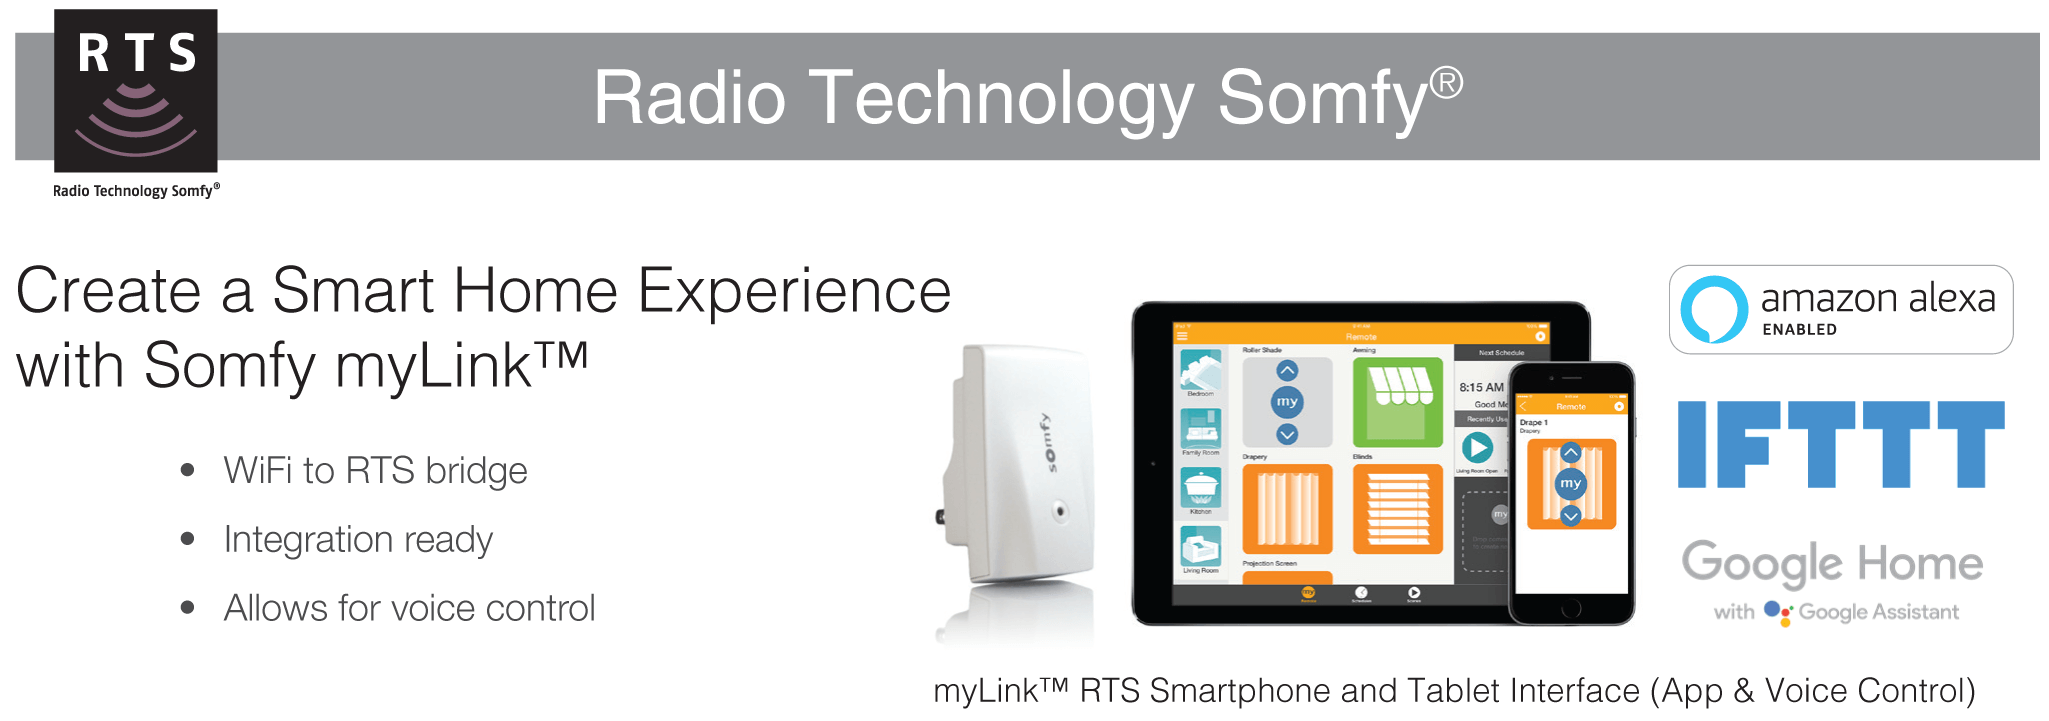 Radio Technology Somfy